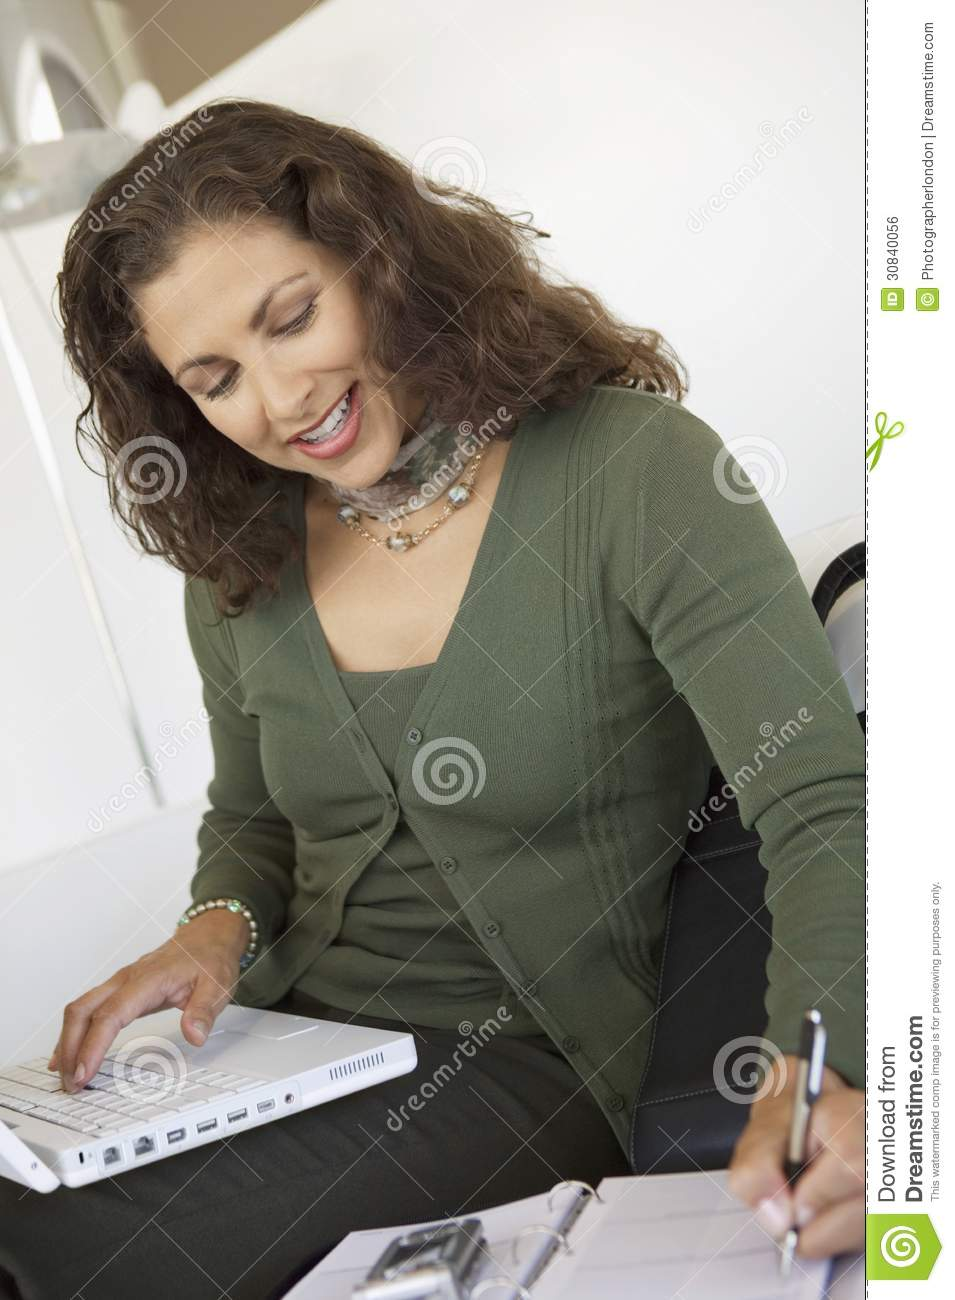 Woman using Cell Phone laptop and Organizer indoors